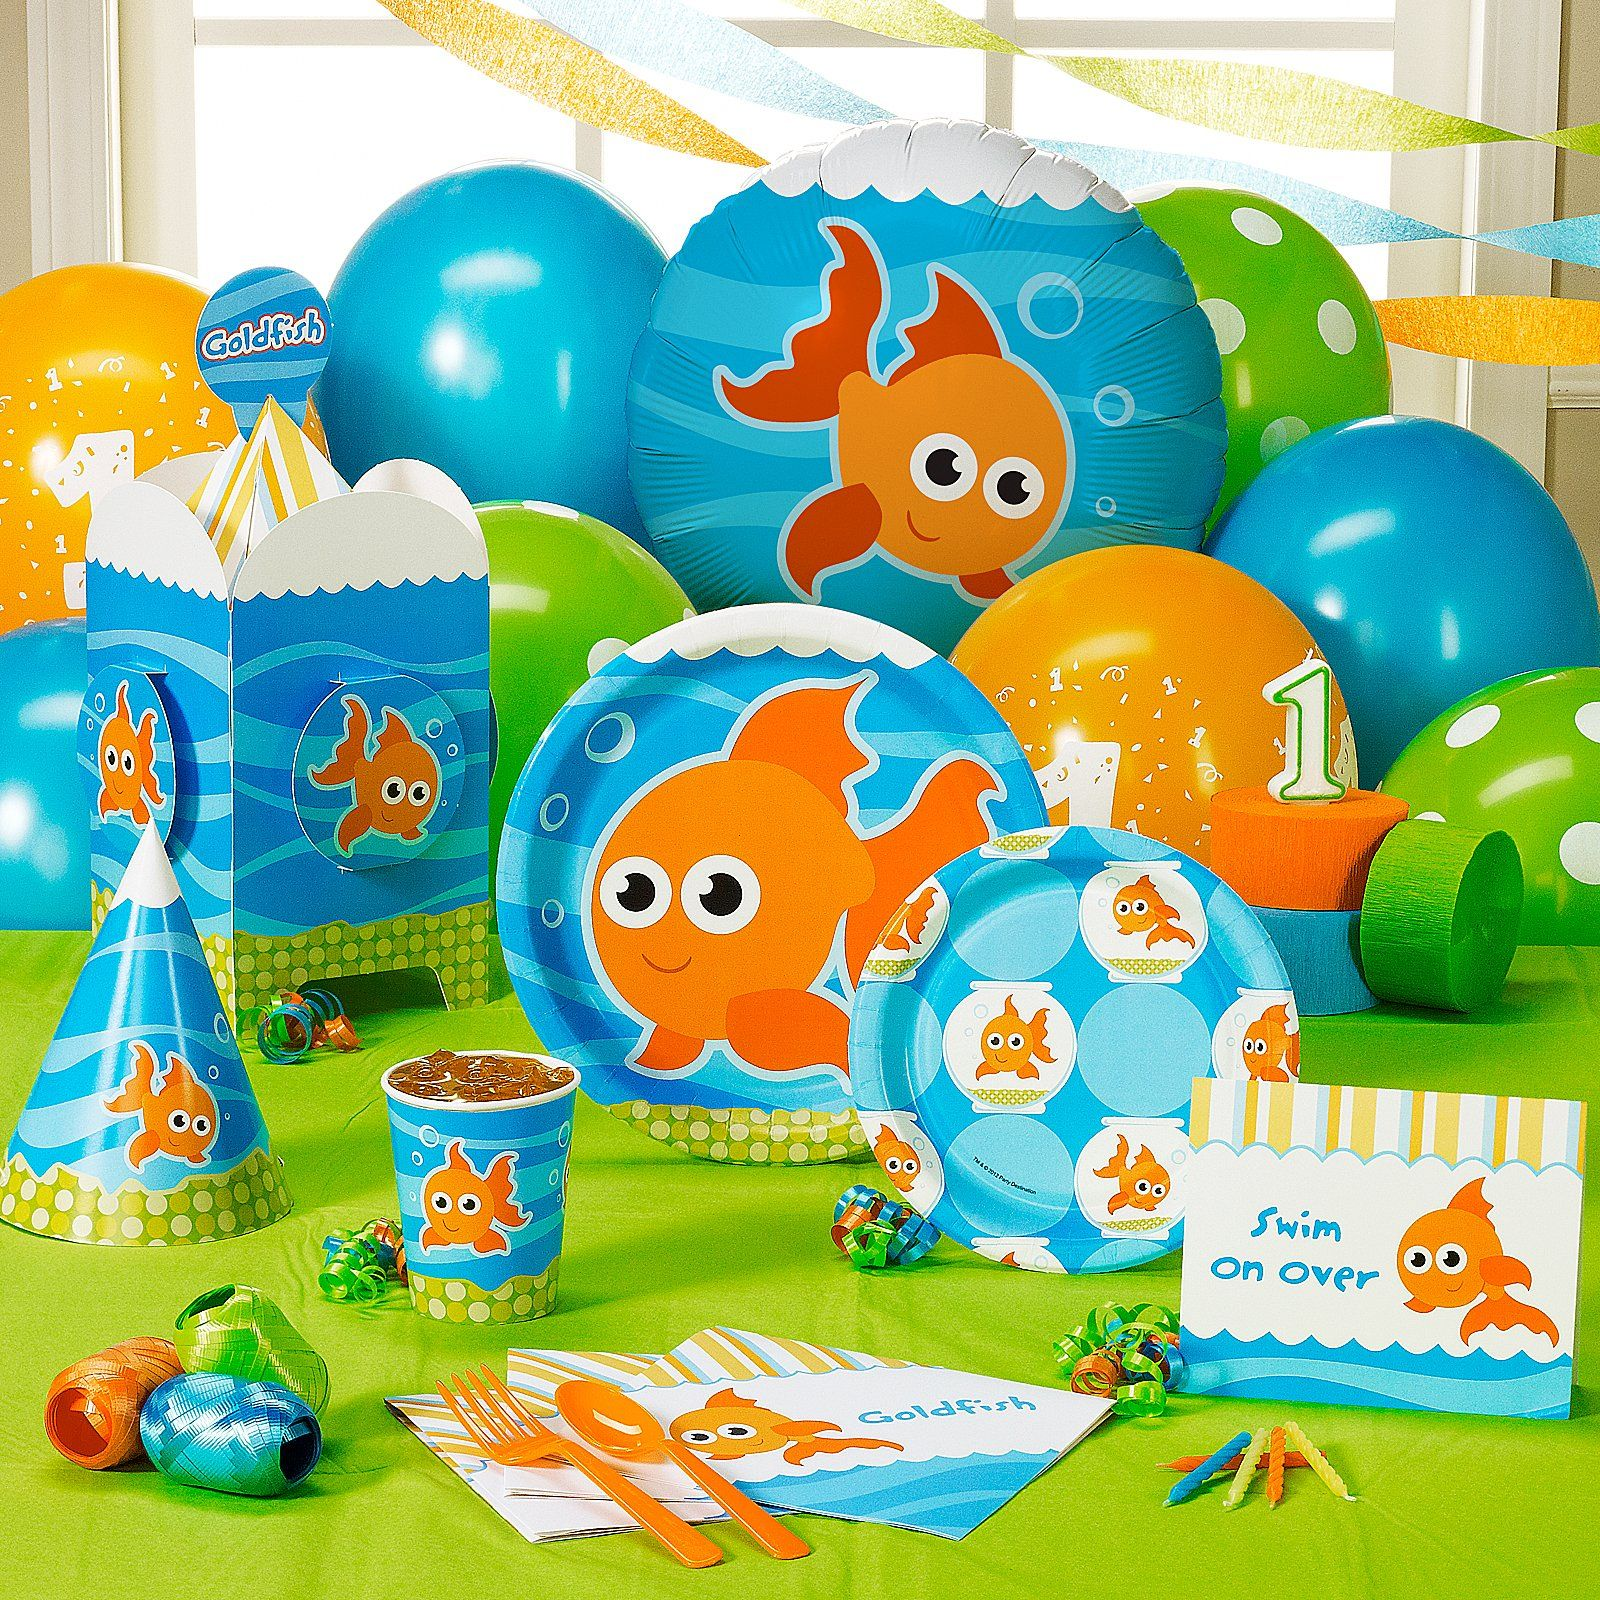 Goldfish plates perfect to go with our Bubble Guppies theme